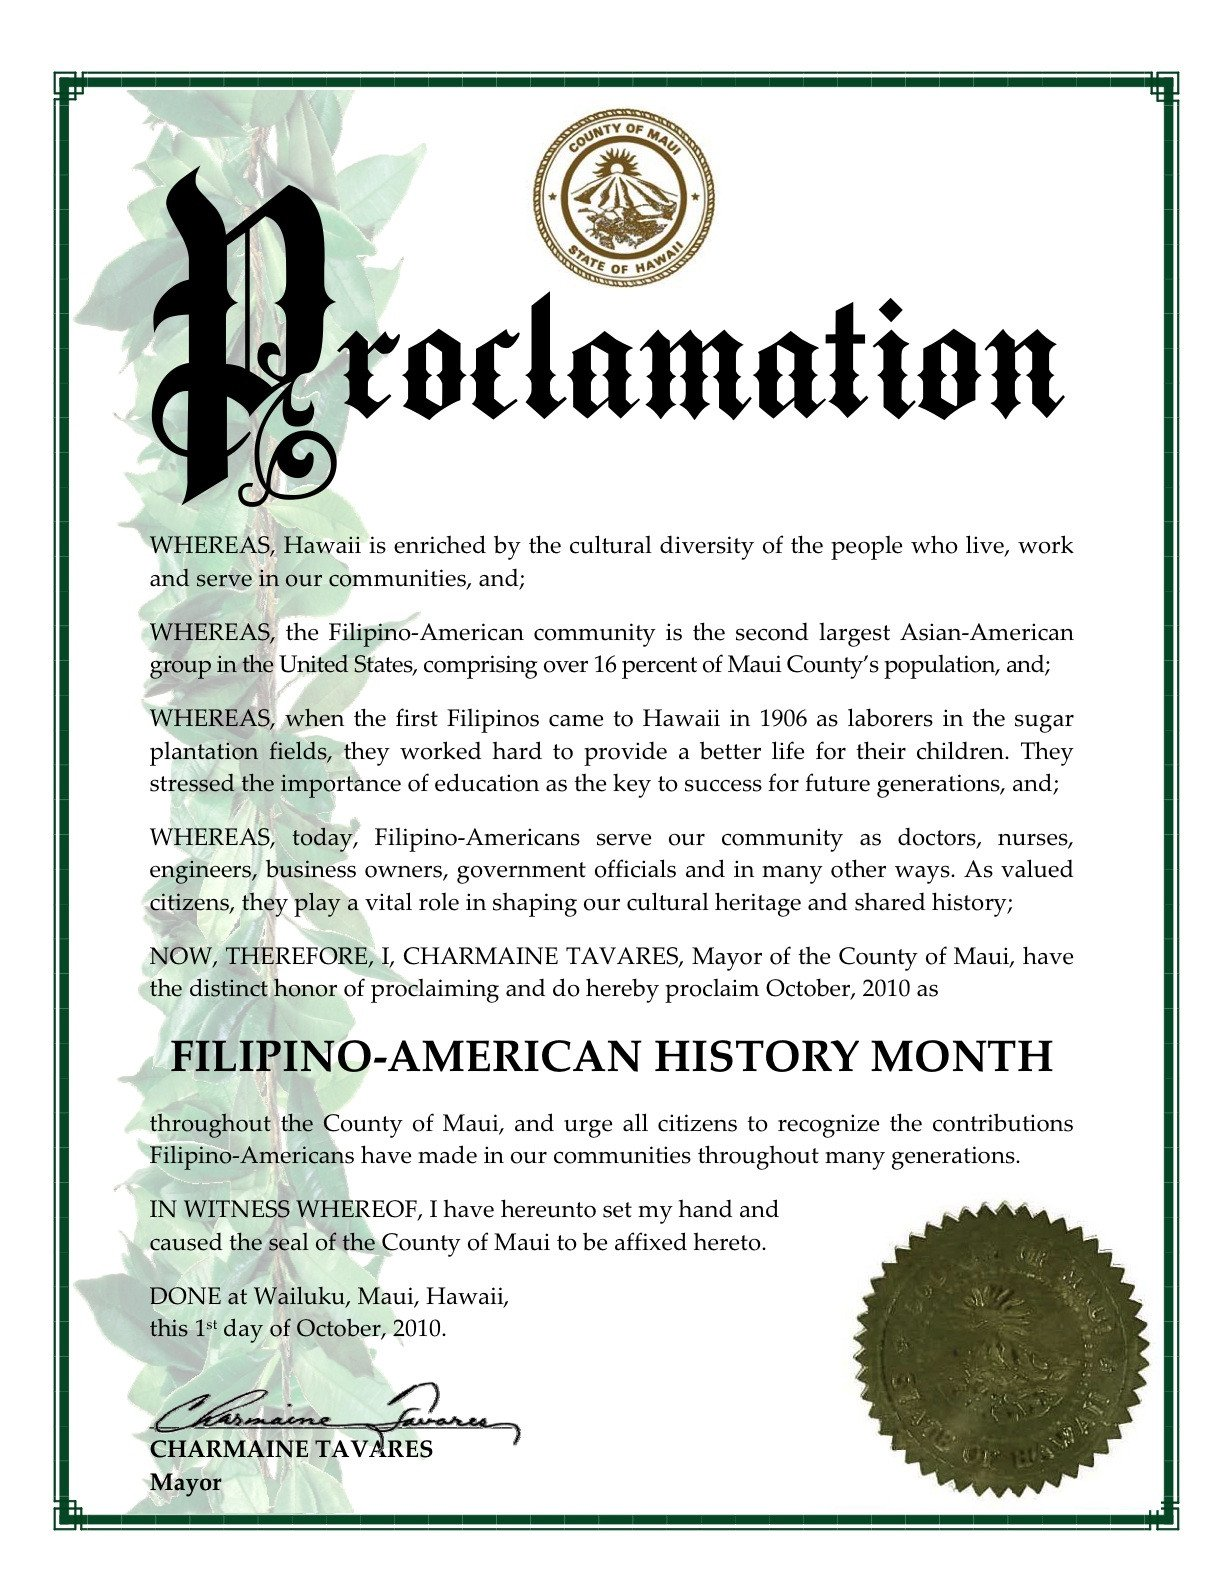 Mayoral Proclamation Template Fil Am Observer Articles [leading Filipino Newspaper